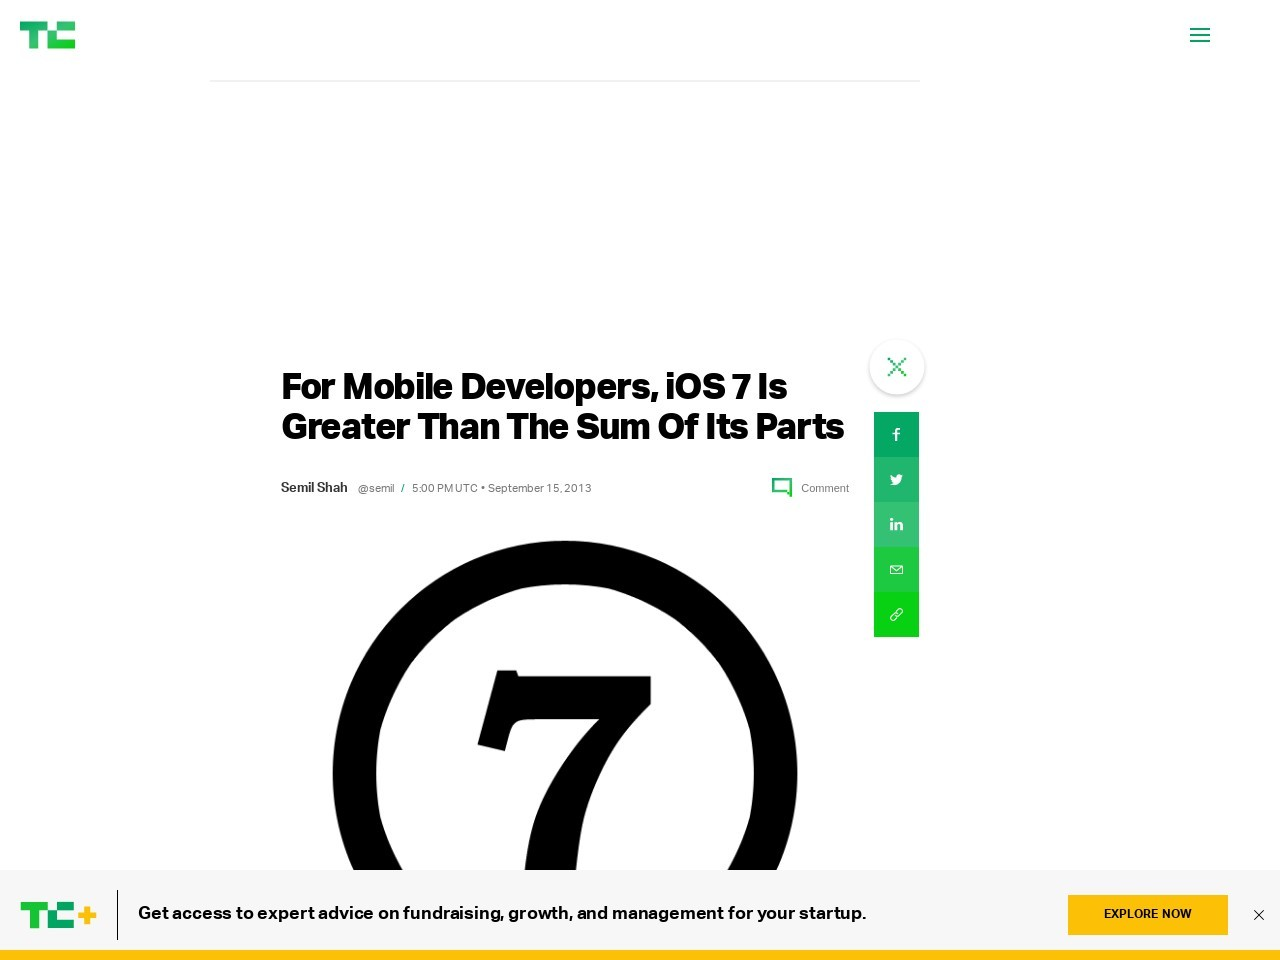 For Mobile Developers, iOS 7 Is Greater Than The Sum Of Its Parts …